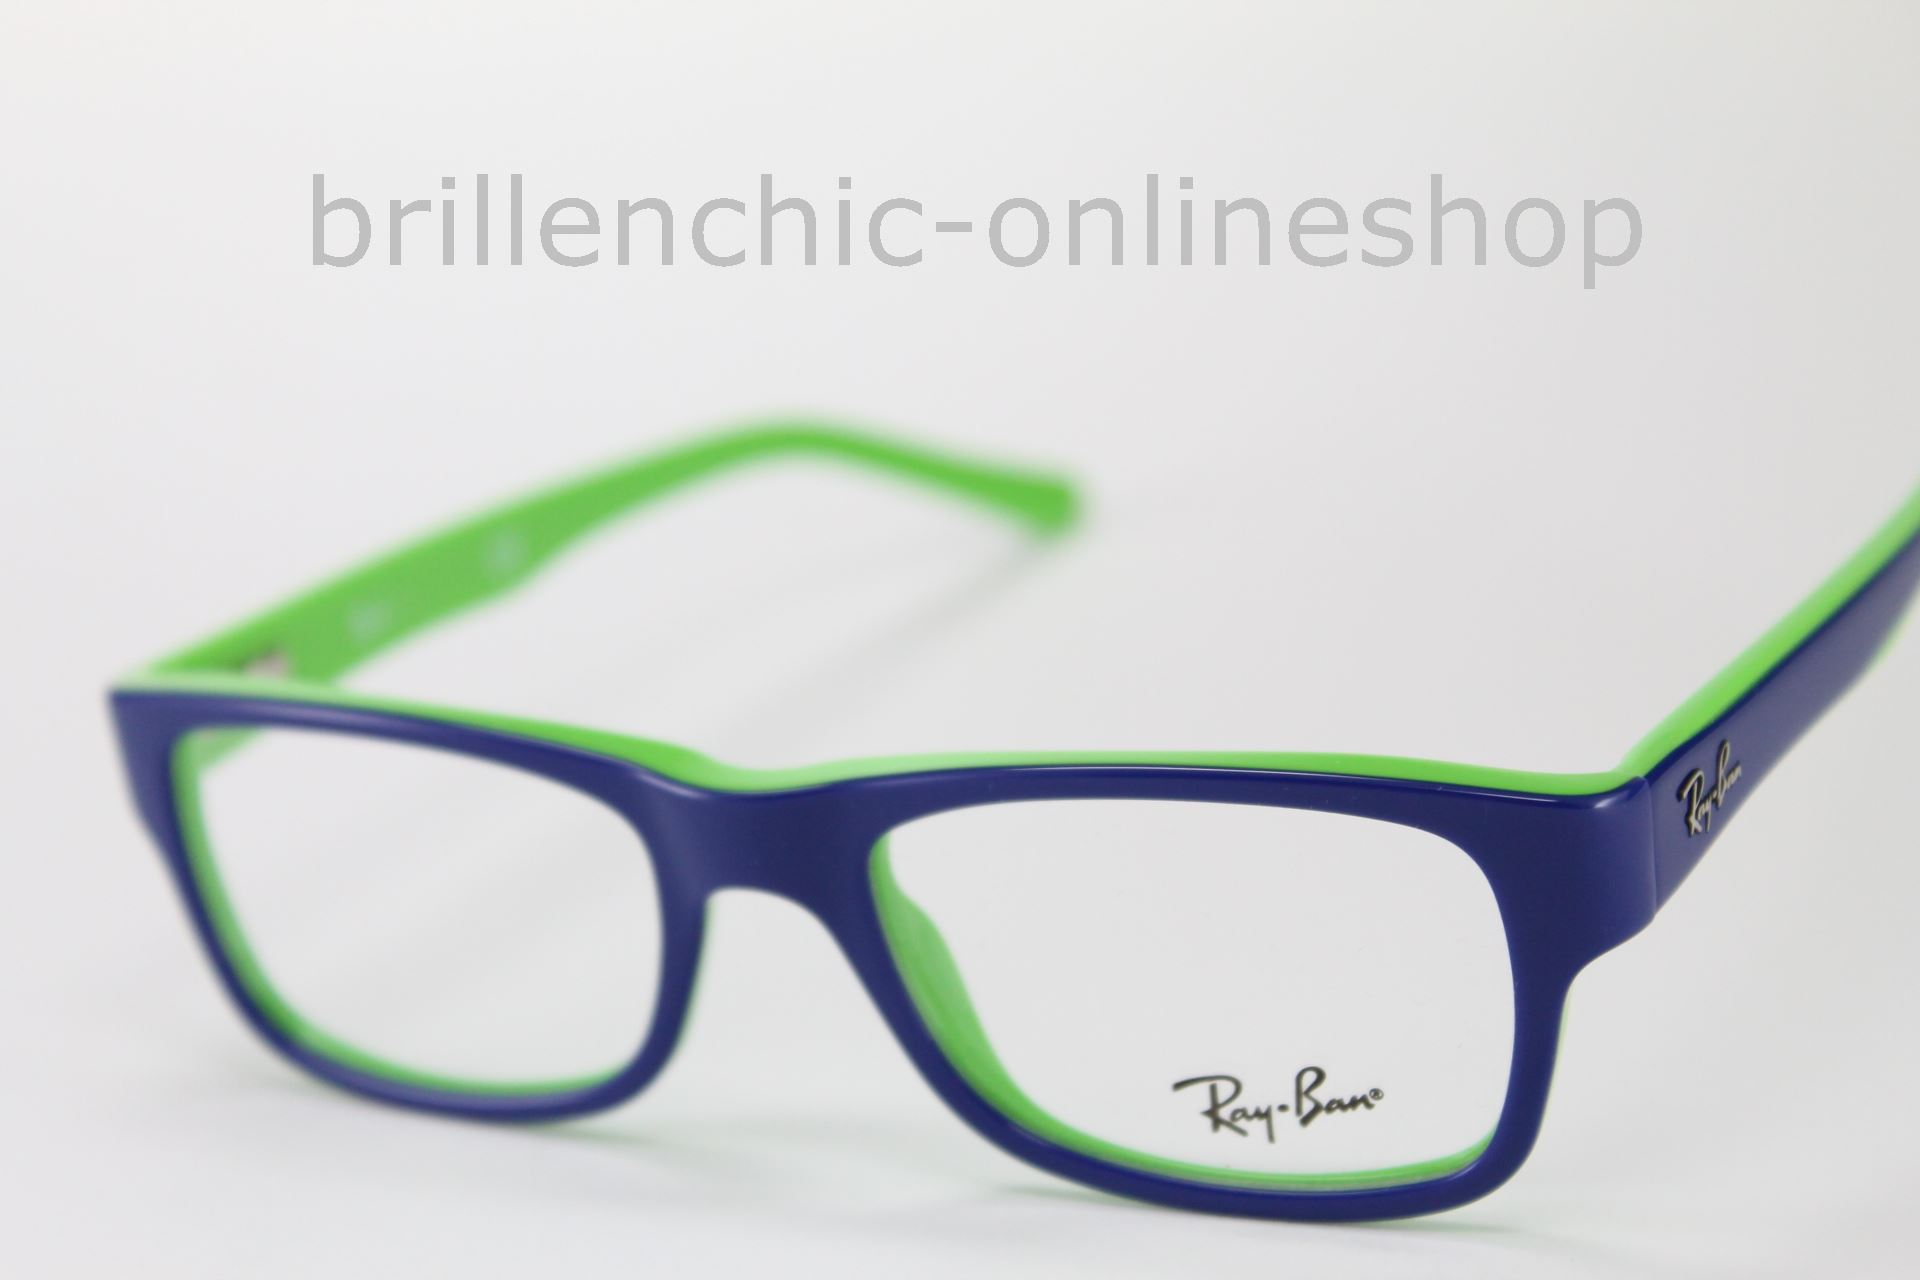 feb877cfbc Brillenchic-onlineshop in Berlin - Ray Ban RB 5268 5182